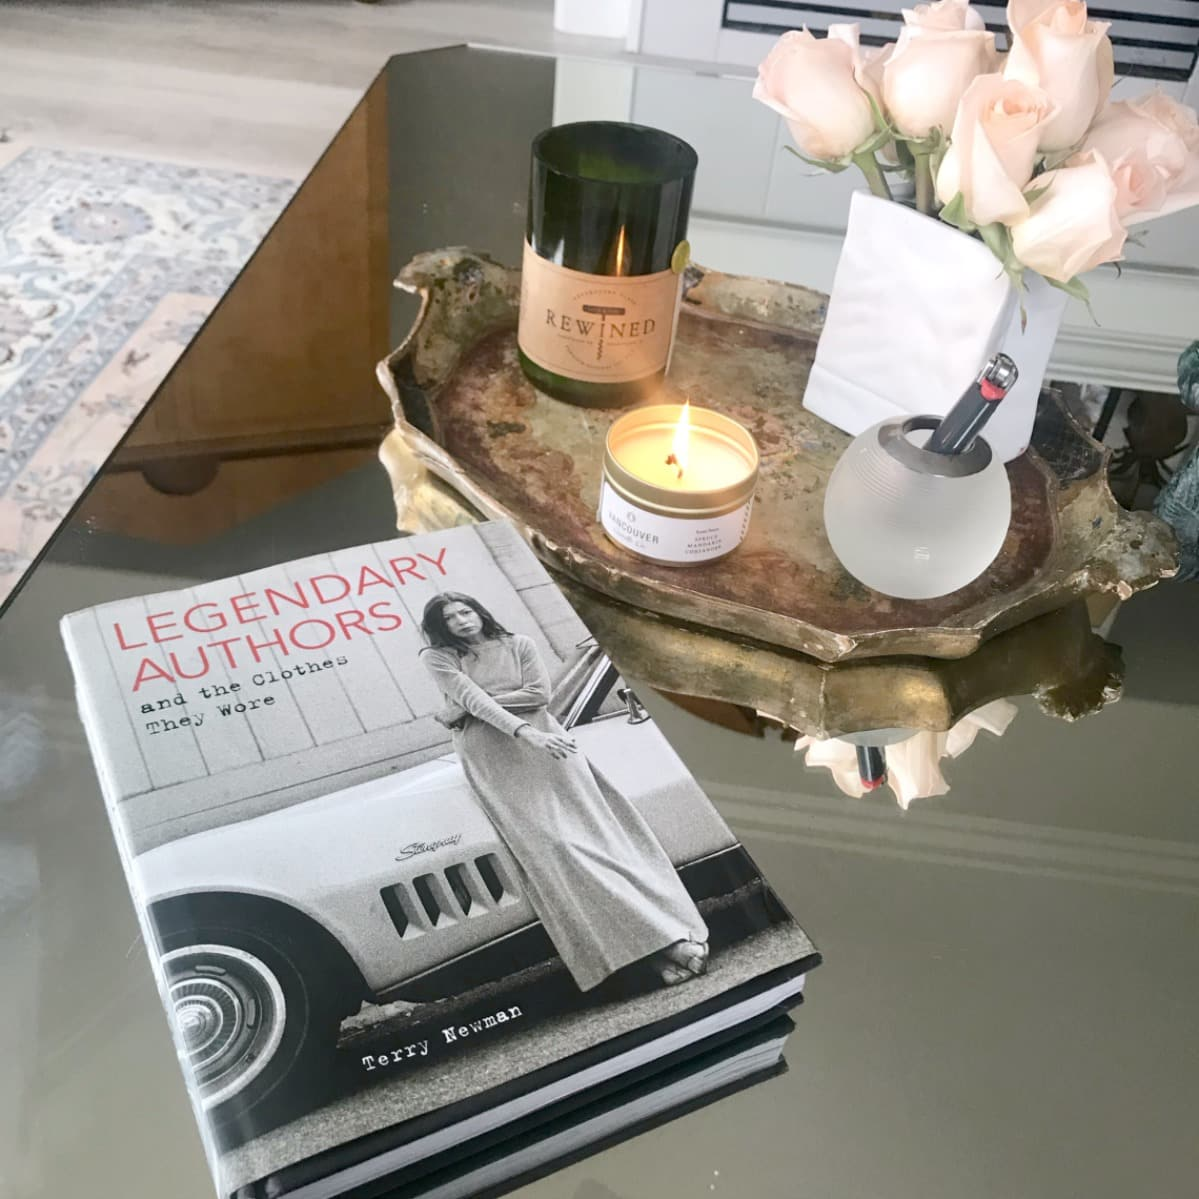 book and several candles on mirrored coffee table